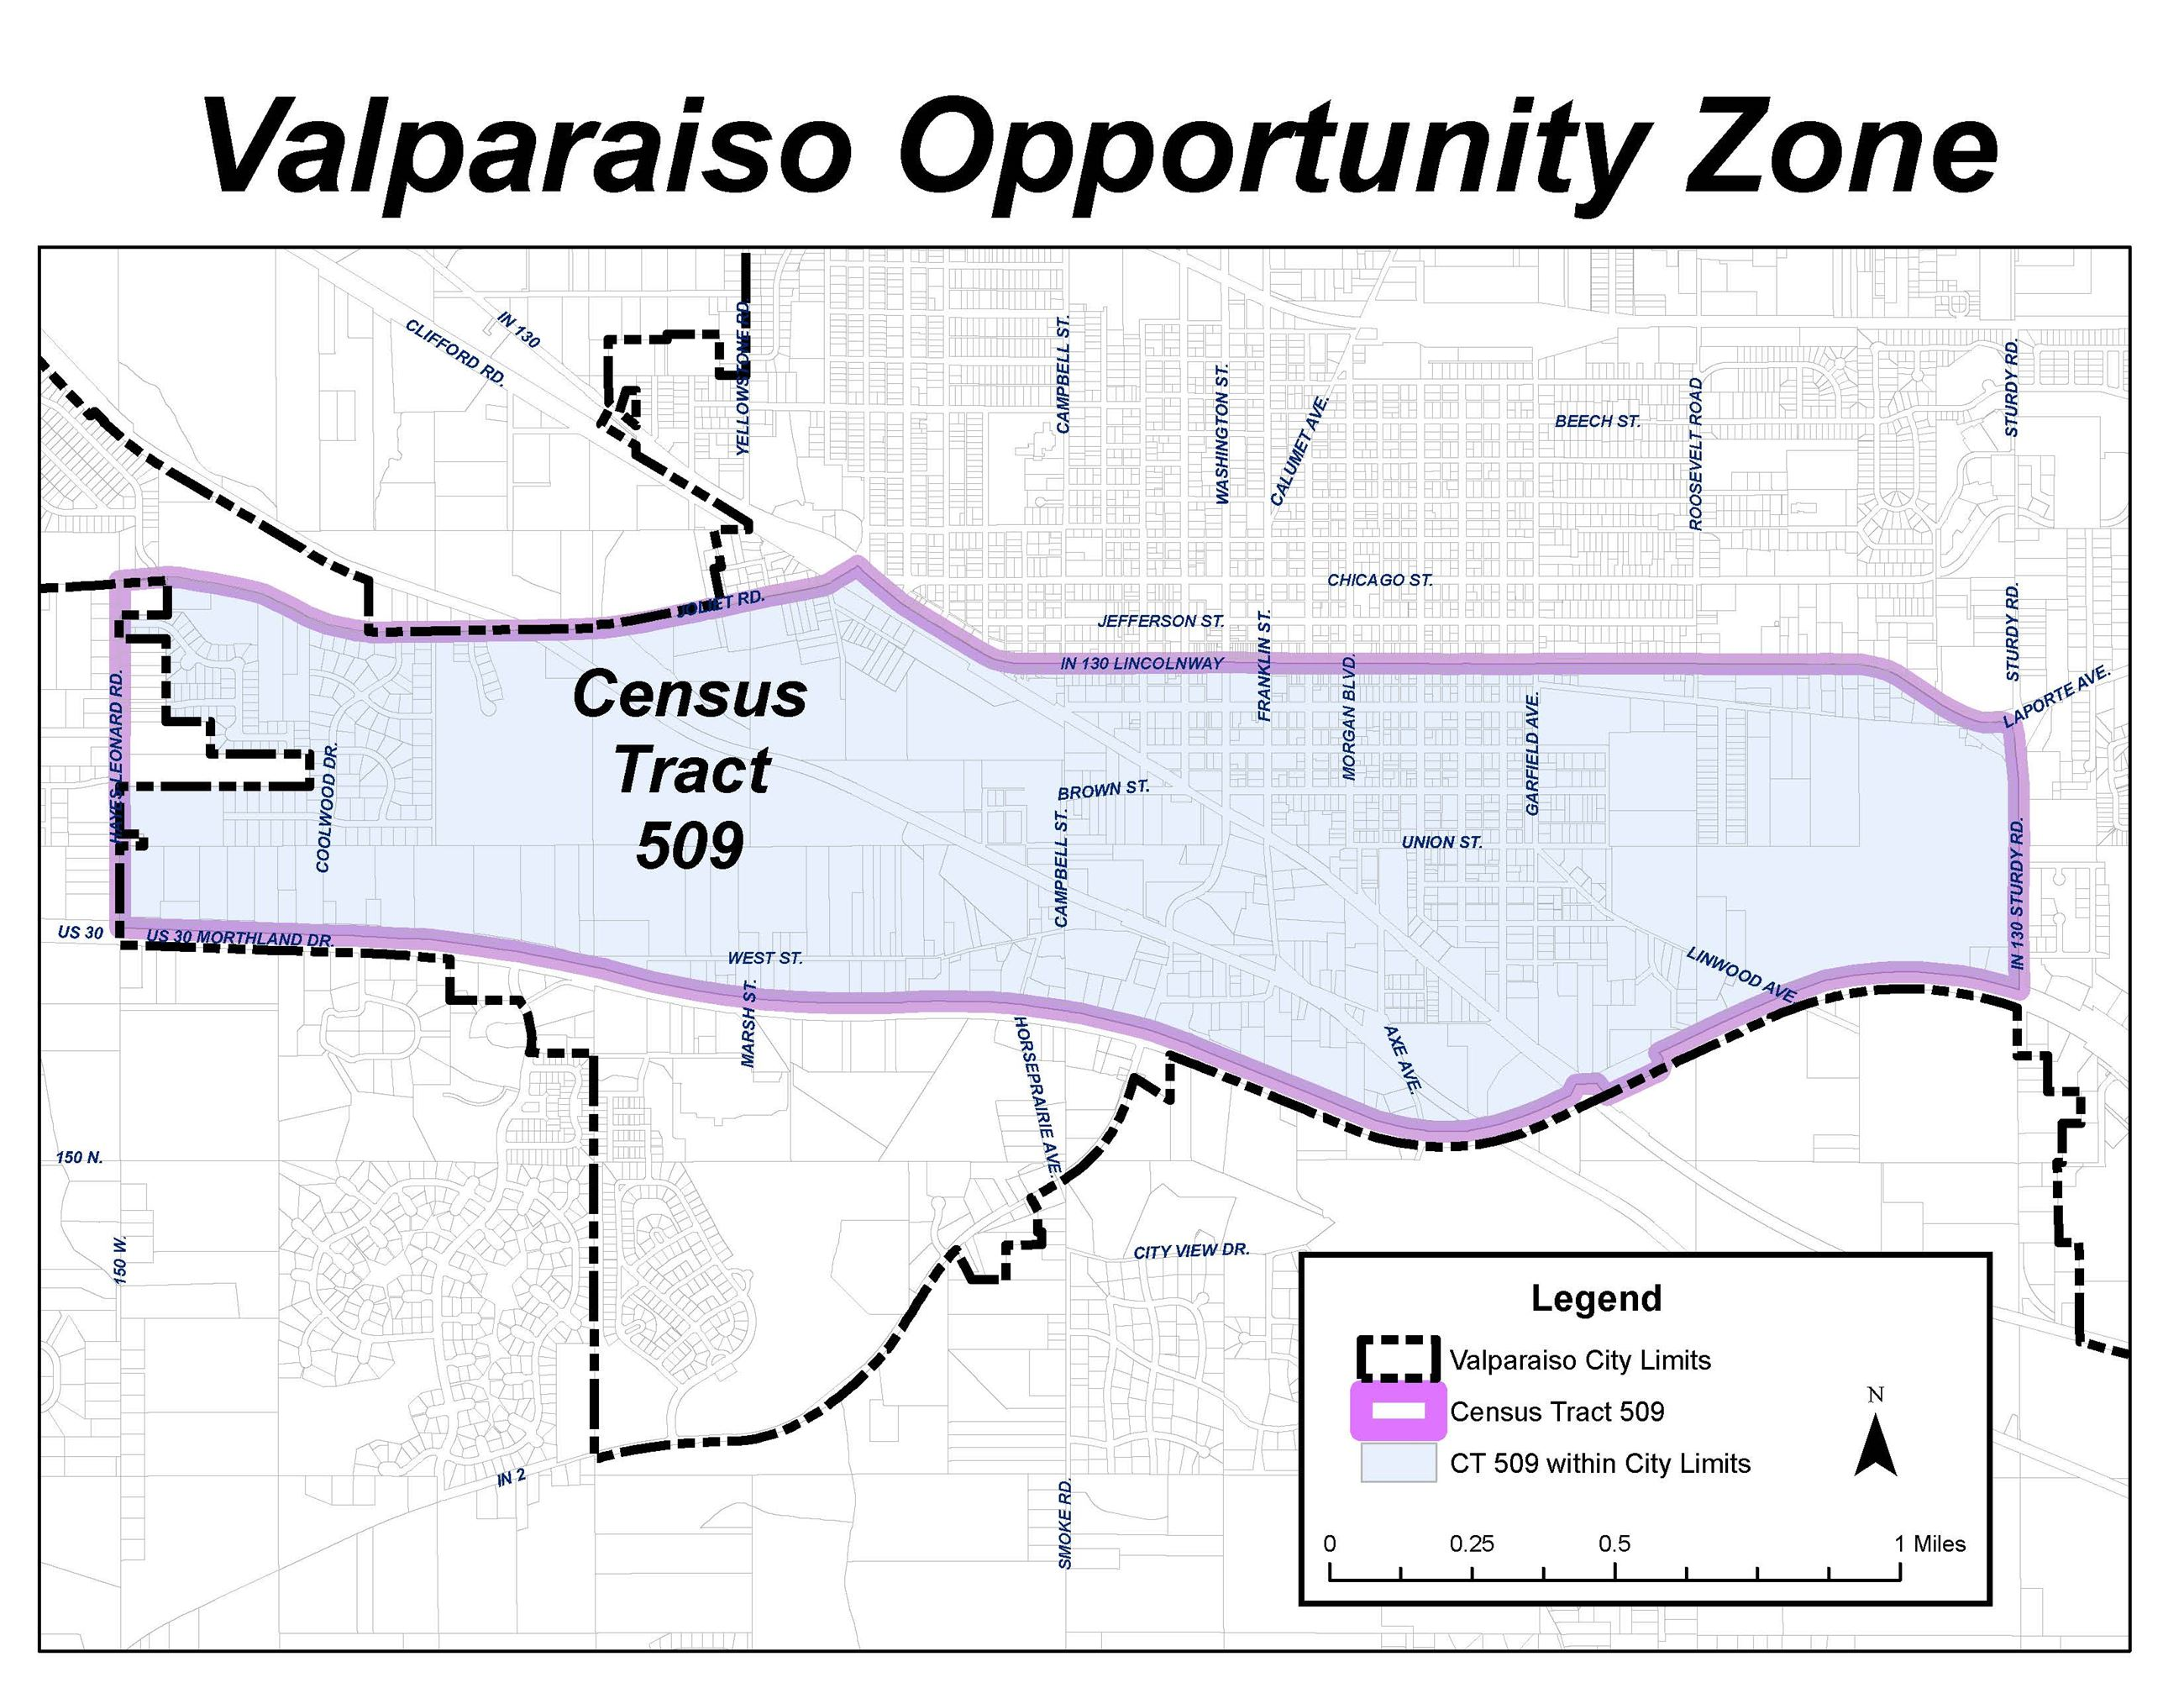 Valpo Opportunity Zone Jan 2019 Opens in new window